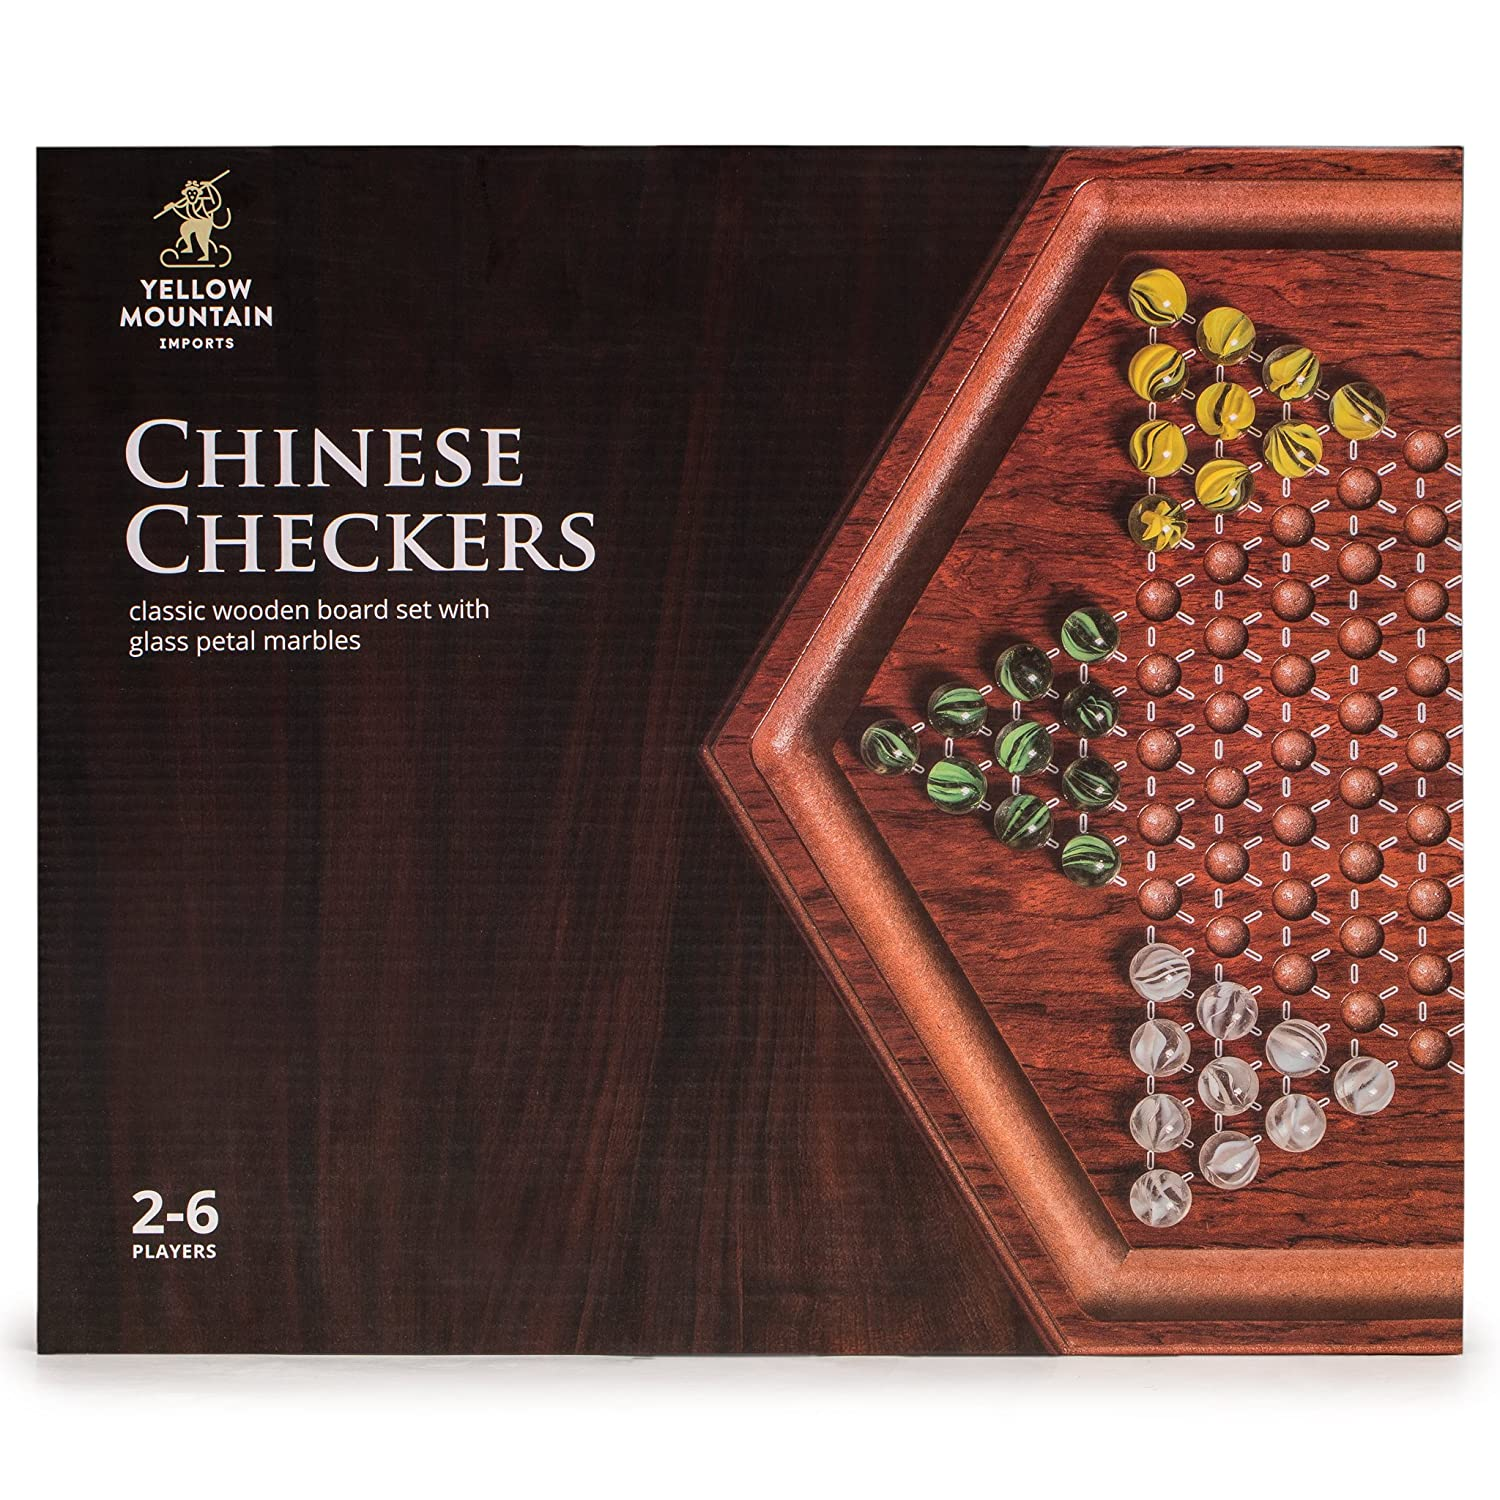 With 60 Colored Marbles Yellow Mountain Imports Wooden Chinese Checkers Game Set 11.75 Inches 16mm